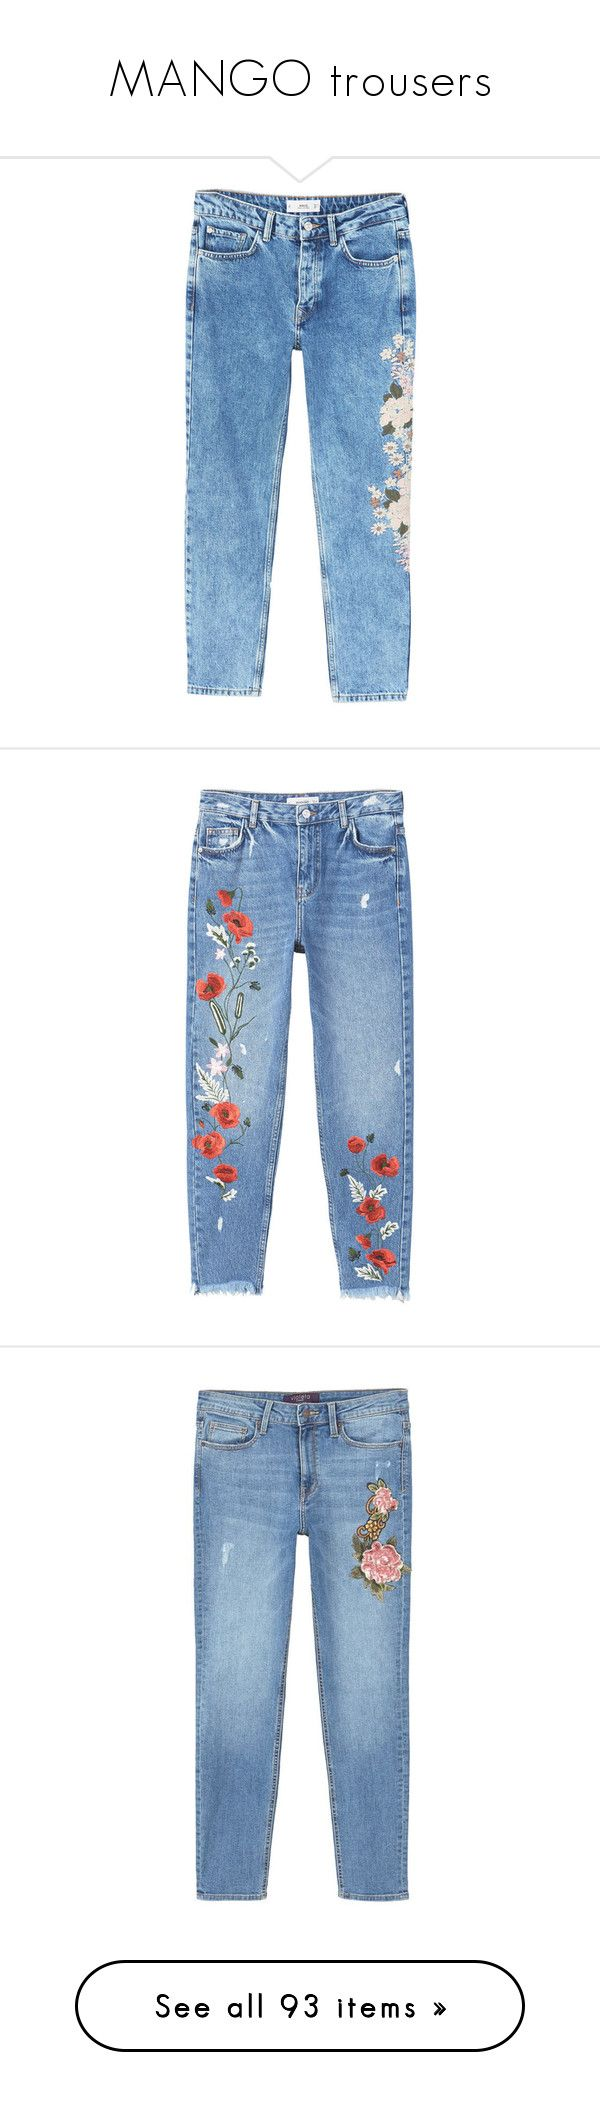 """MANGO trousers"" by alenasb ❤ liked on Polyvore featuring jeans, pants, bottoms, pantalon, calças, torn jeans, distressed straight-leg jeans, blue ripped jeans, blue distressed jeans and distressed zipper jeans"